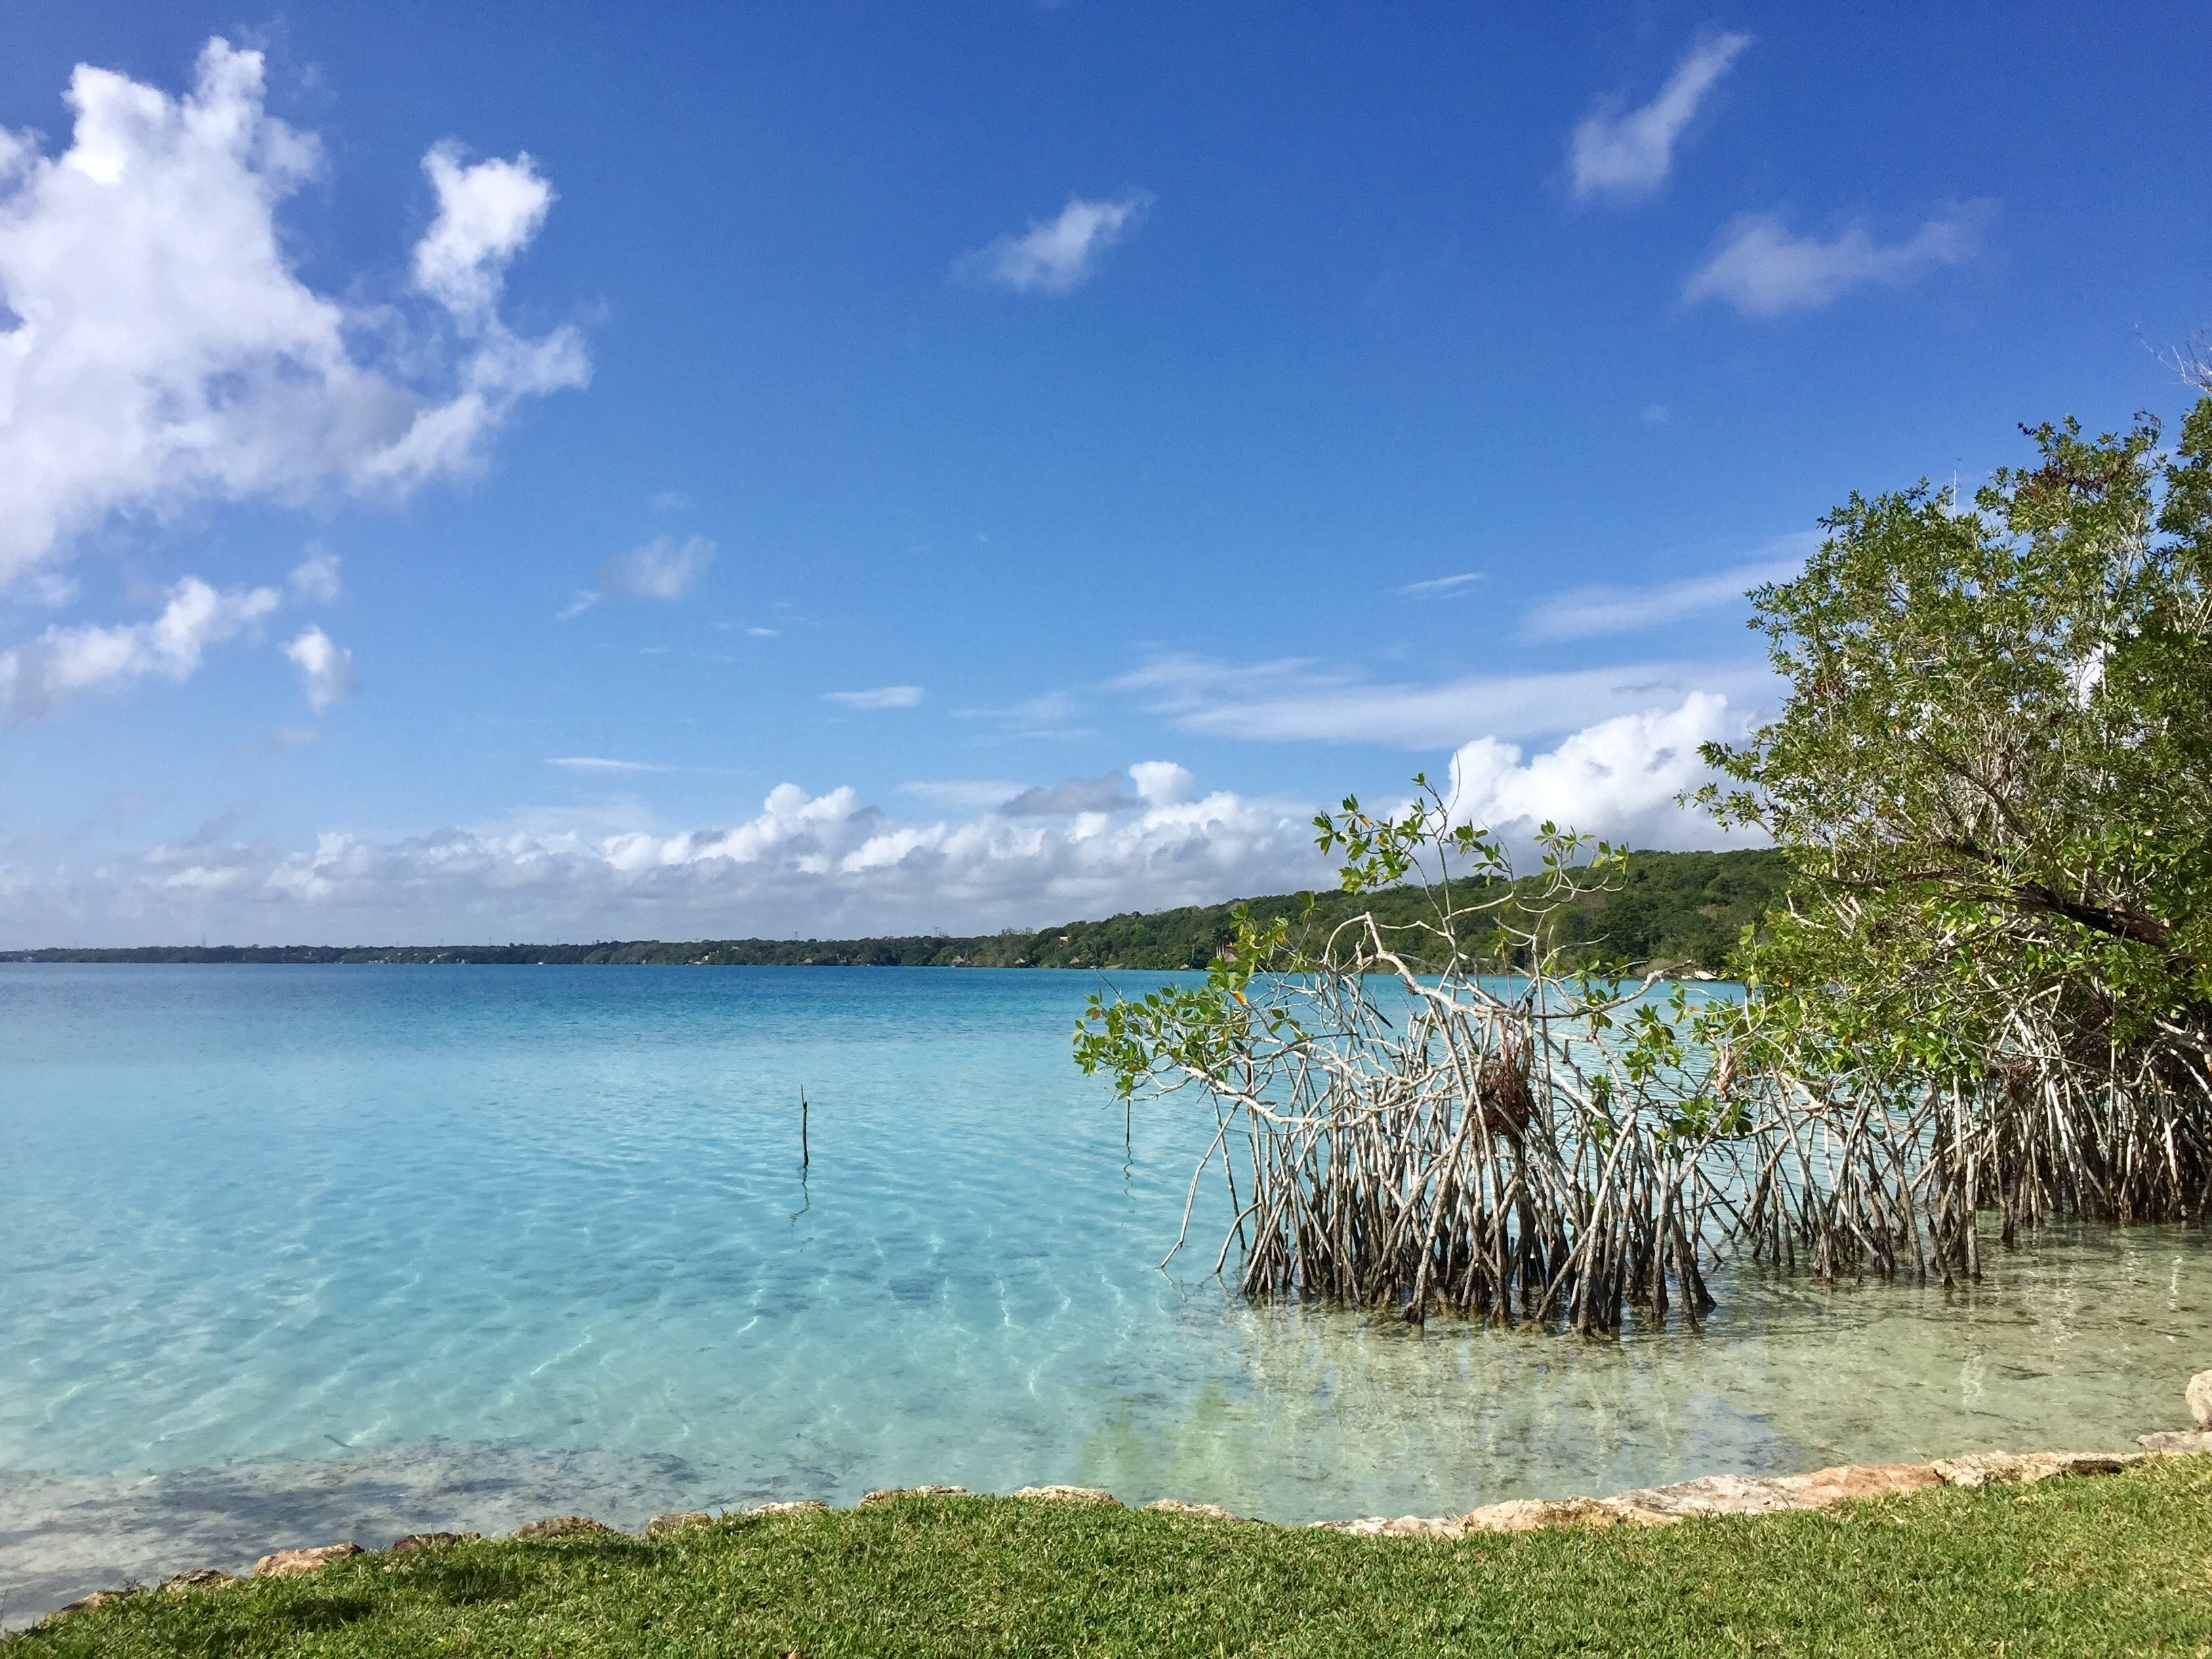 Shores of Laguna Bacalar